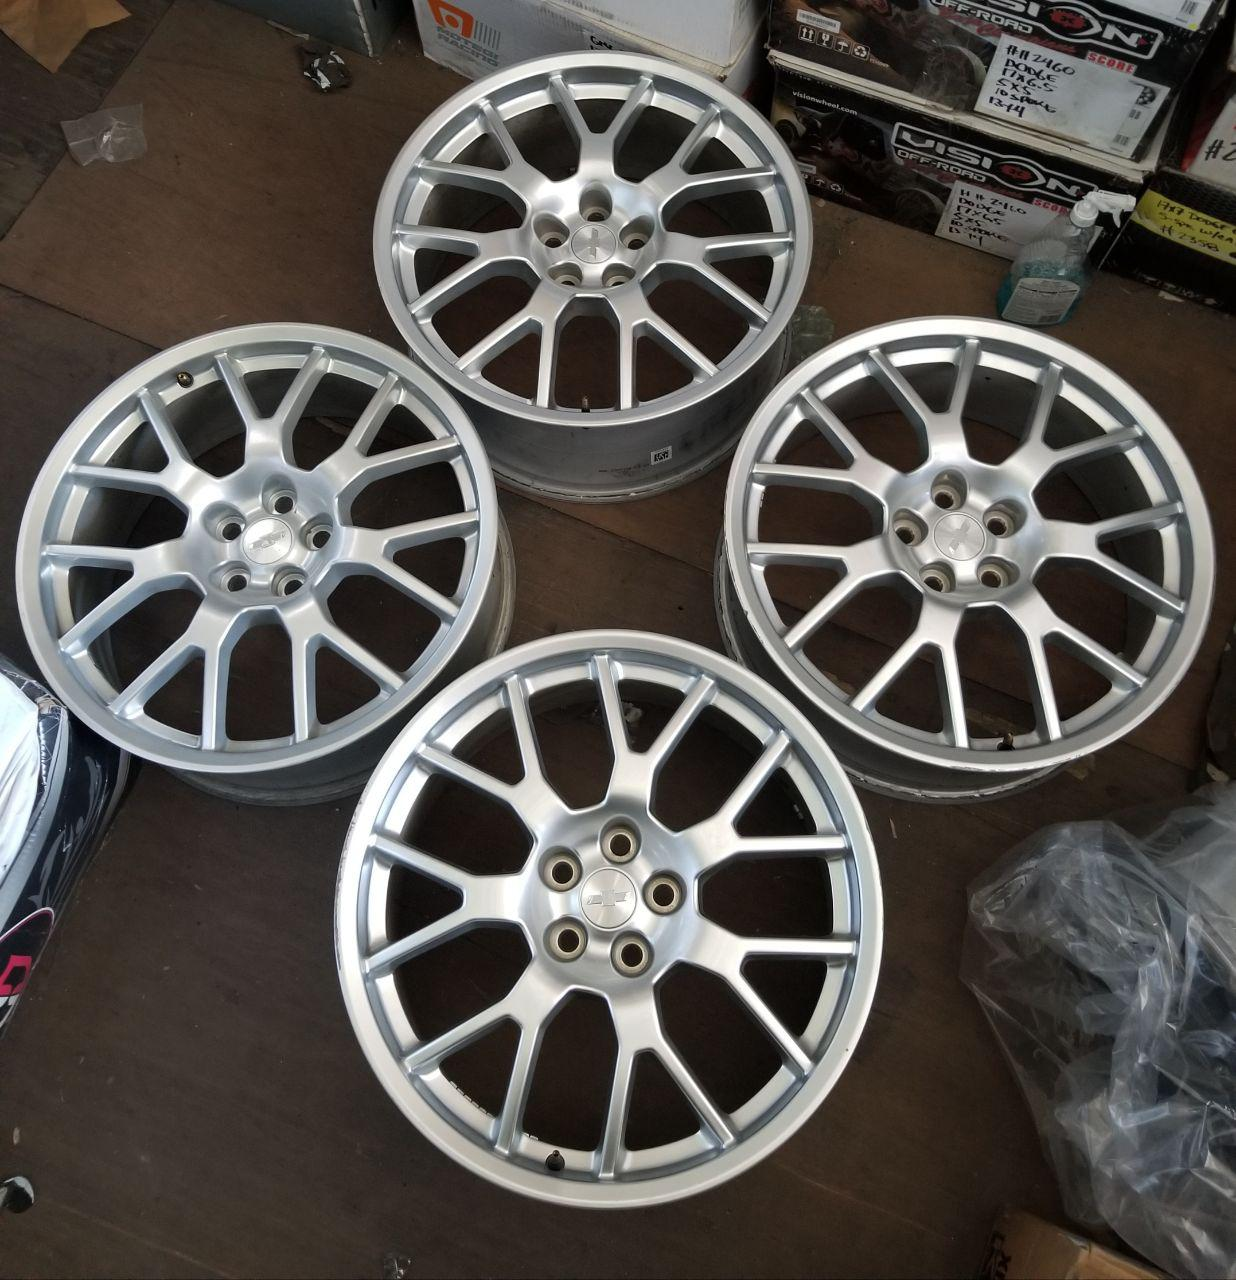 - OEM WHEELS - 2013-2015 GM CAMARO 21x8.5 7 Y SPOKE Hollander #5587 /  USED